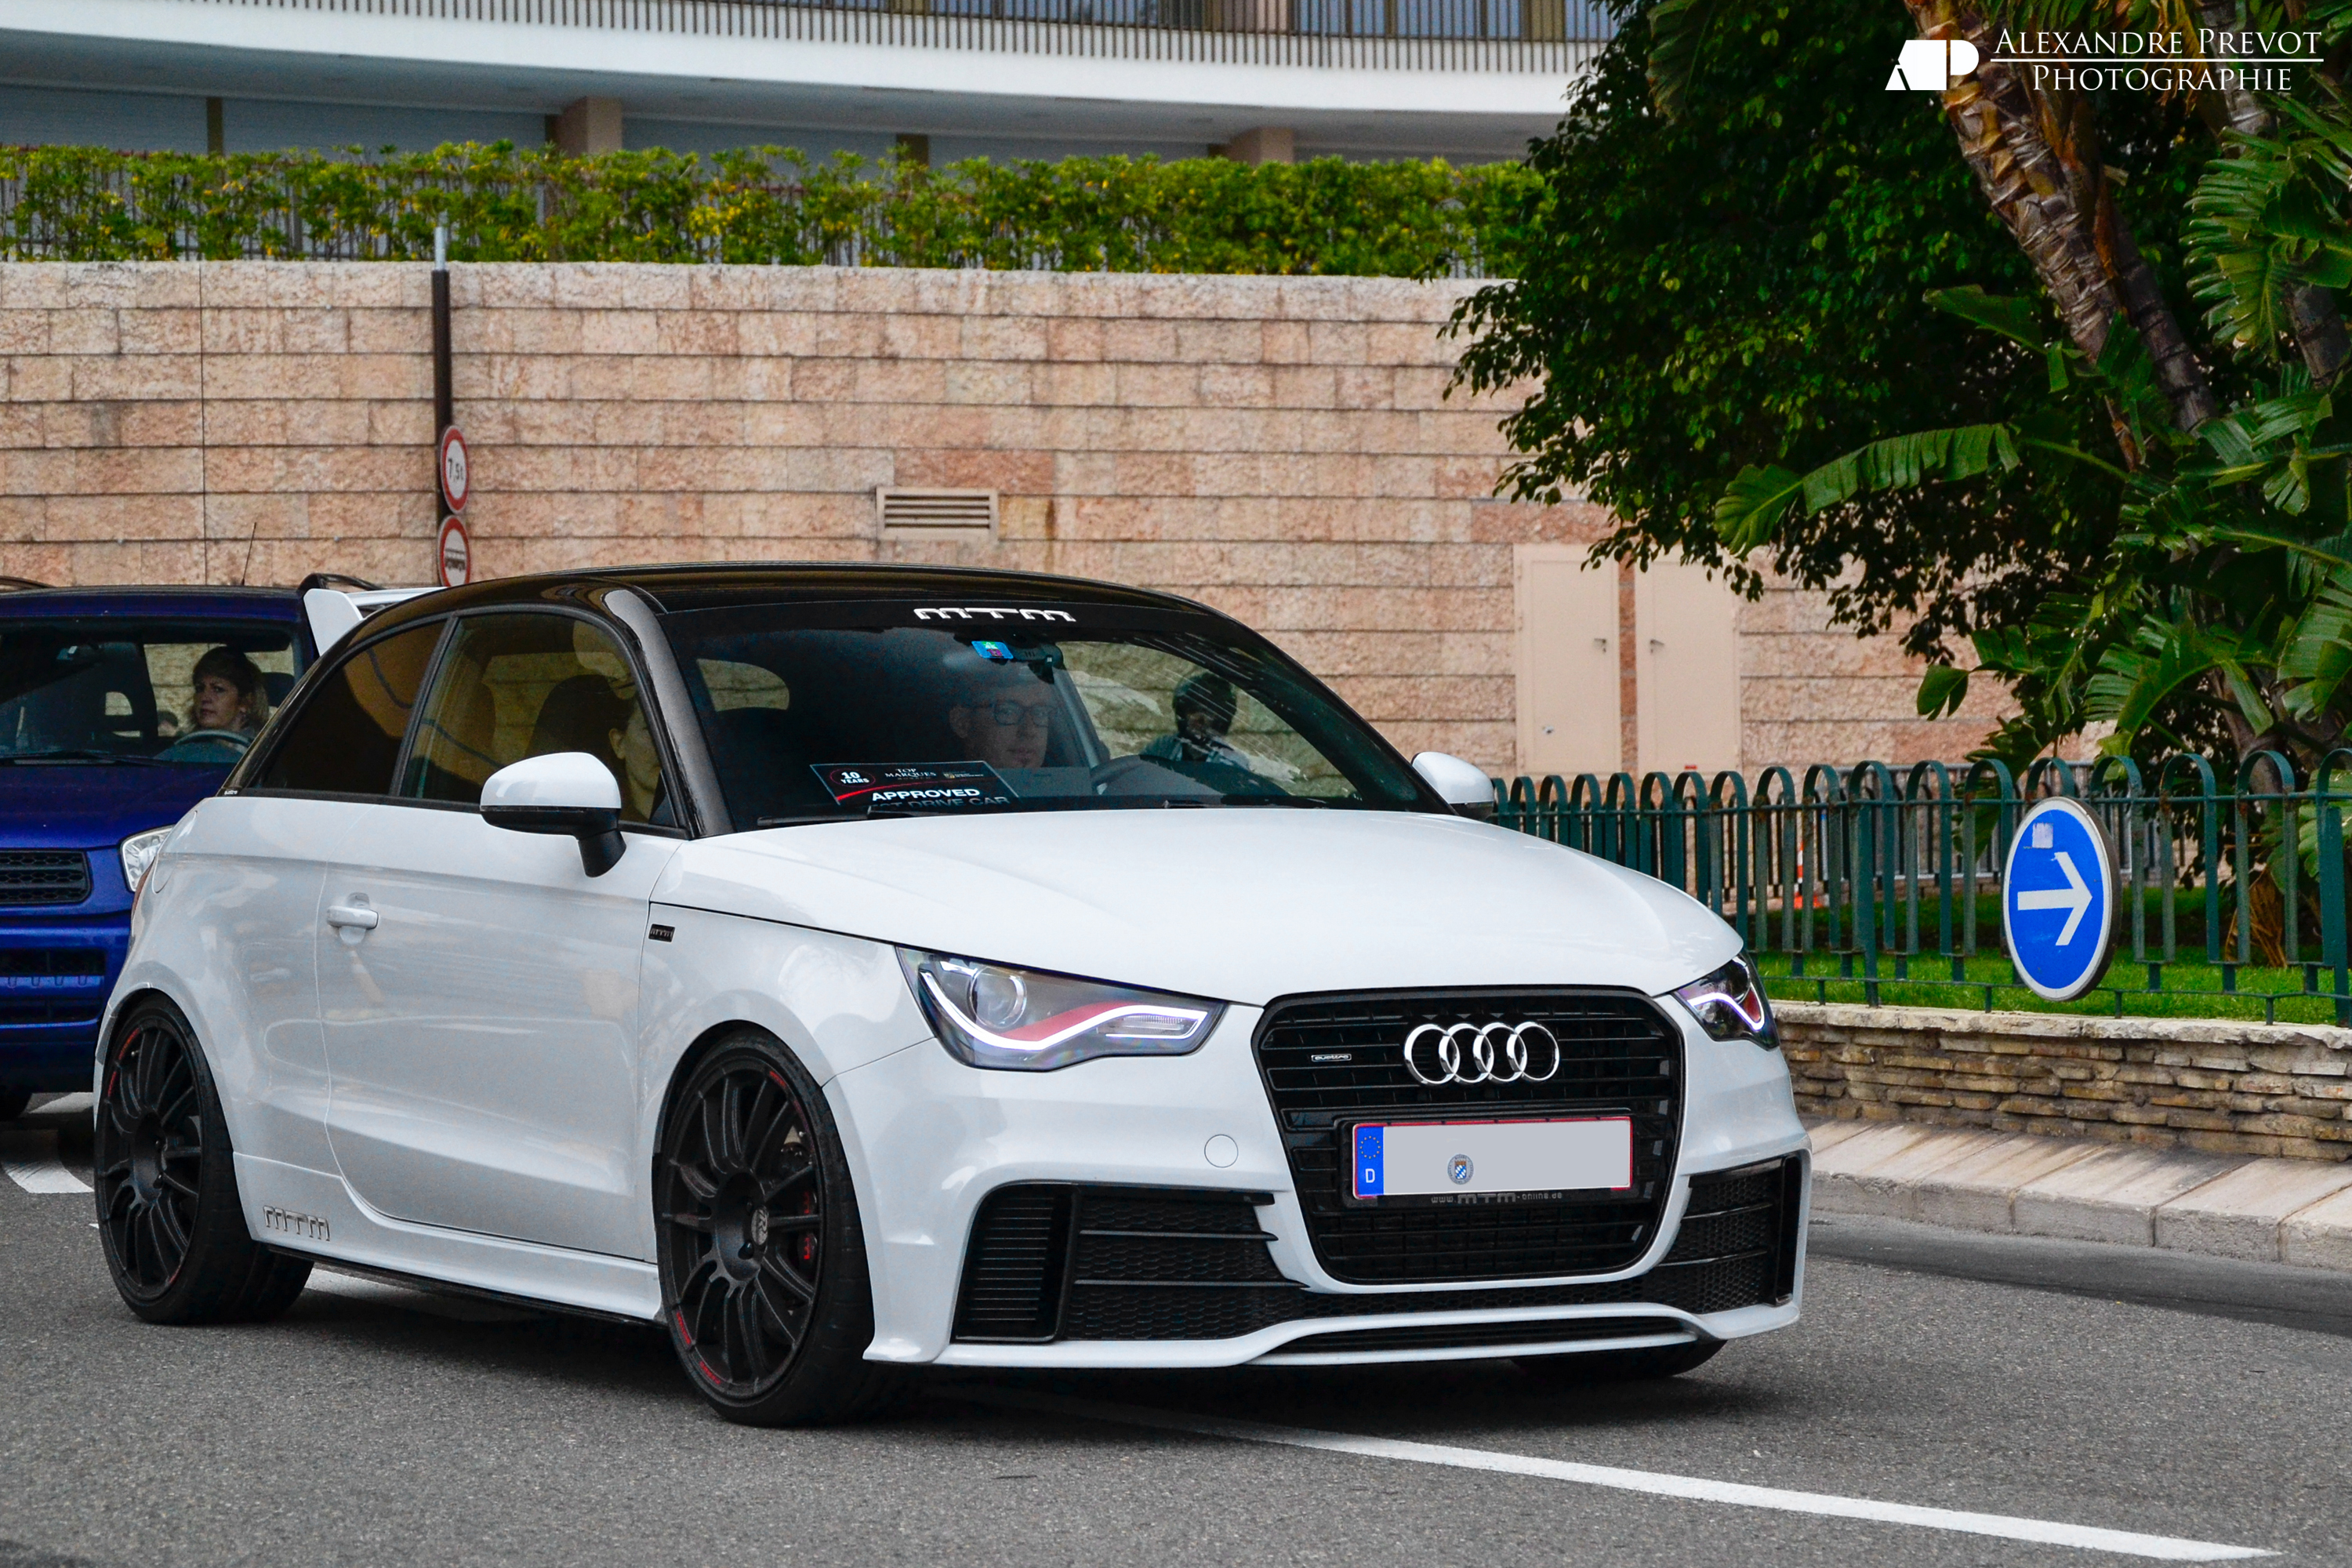 Audi A1 Quattro High Quality Background on Wallpapers Vista